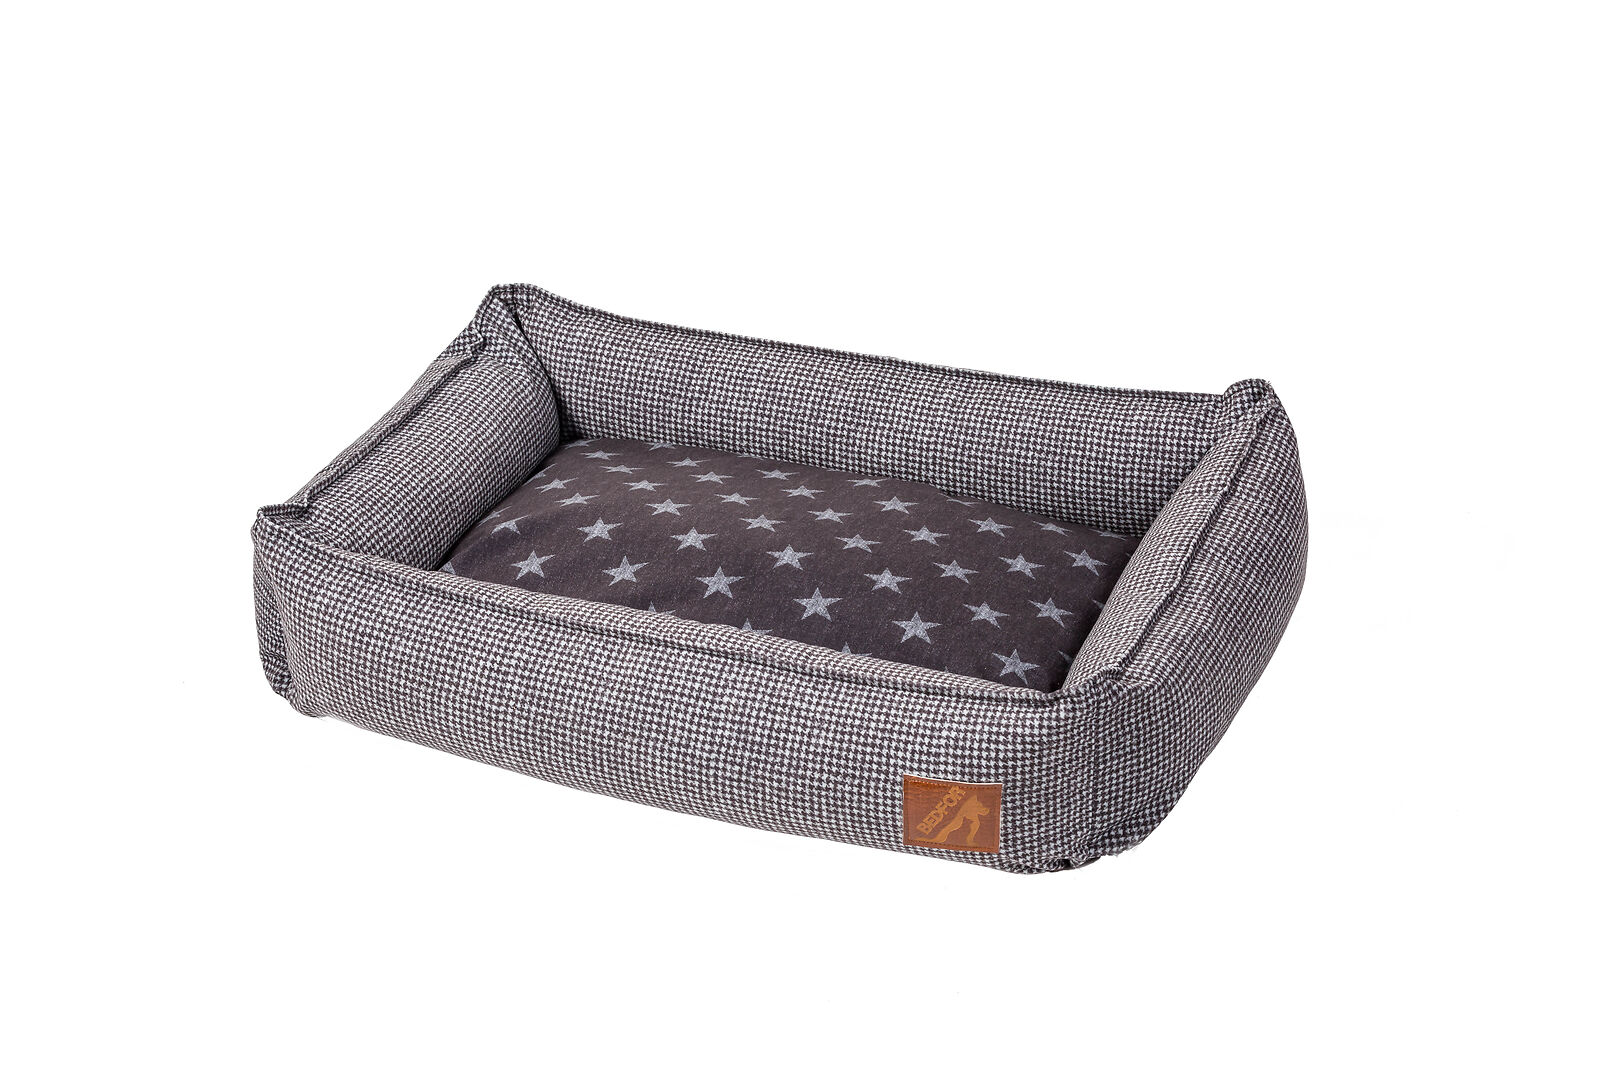 Dog bed with removable covers (brand BEDFOR)